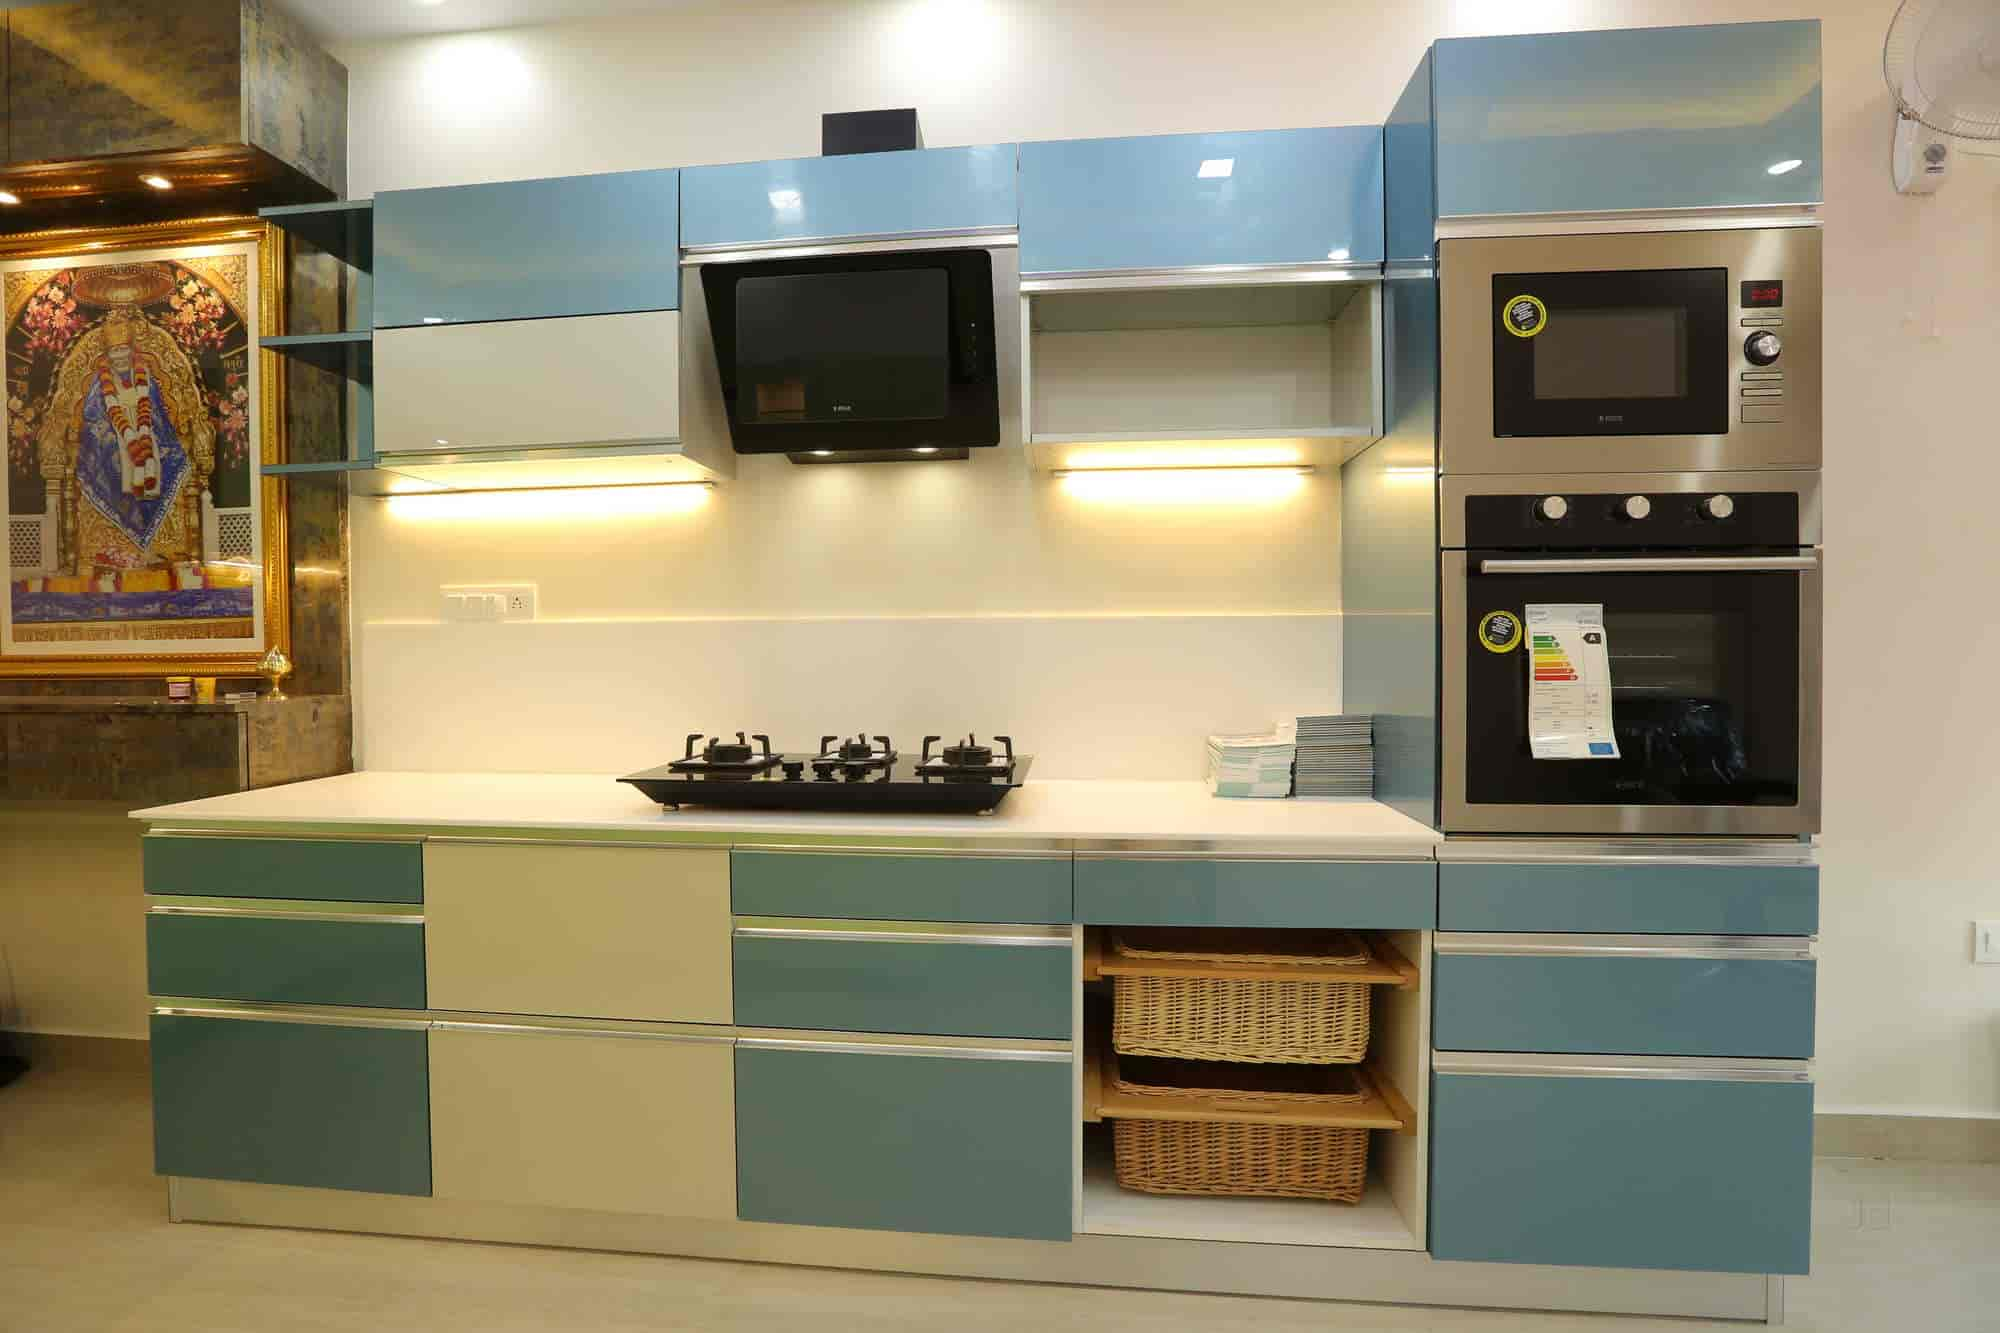 modular kitchen usa classic sink dks kitchens and accessories photos mapusa goa pictures dk s dealers